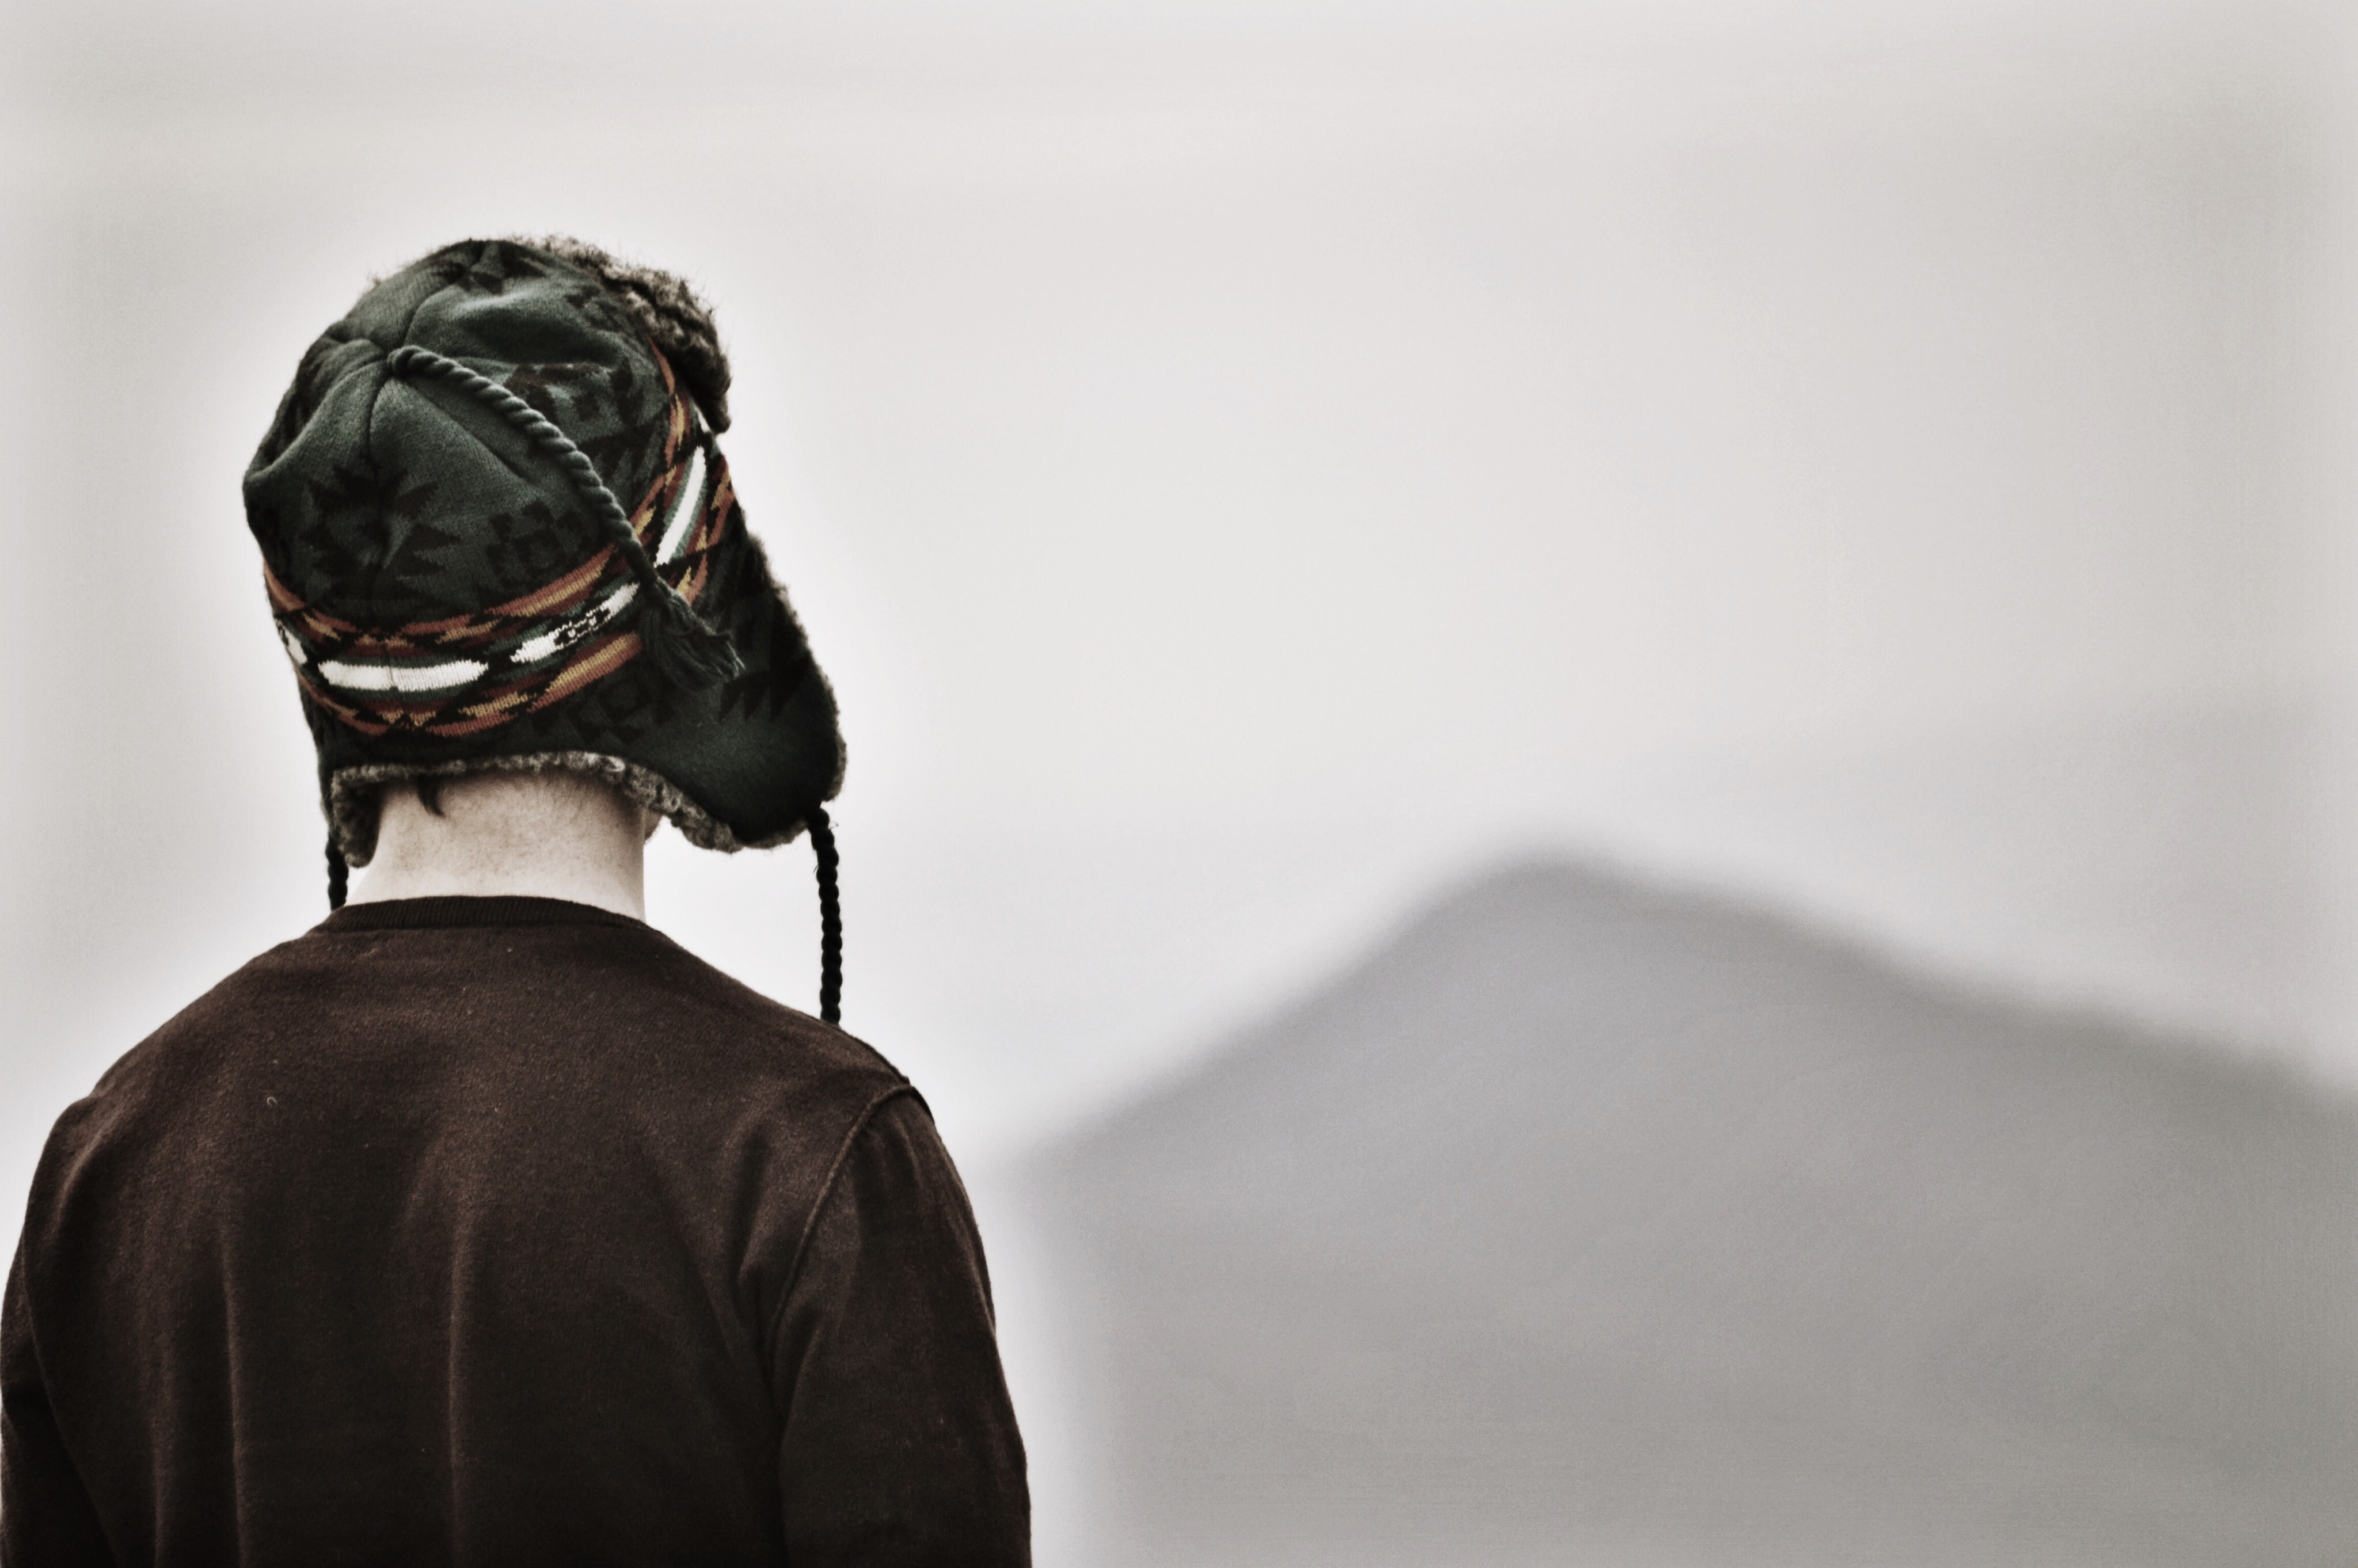 A person in an ear-flap hat looks into the distance in the Blue Ridge mountains